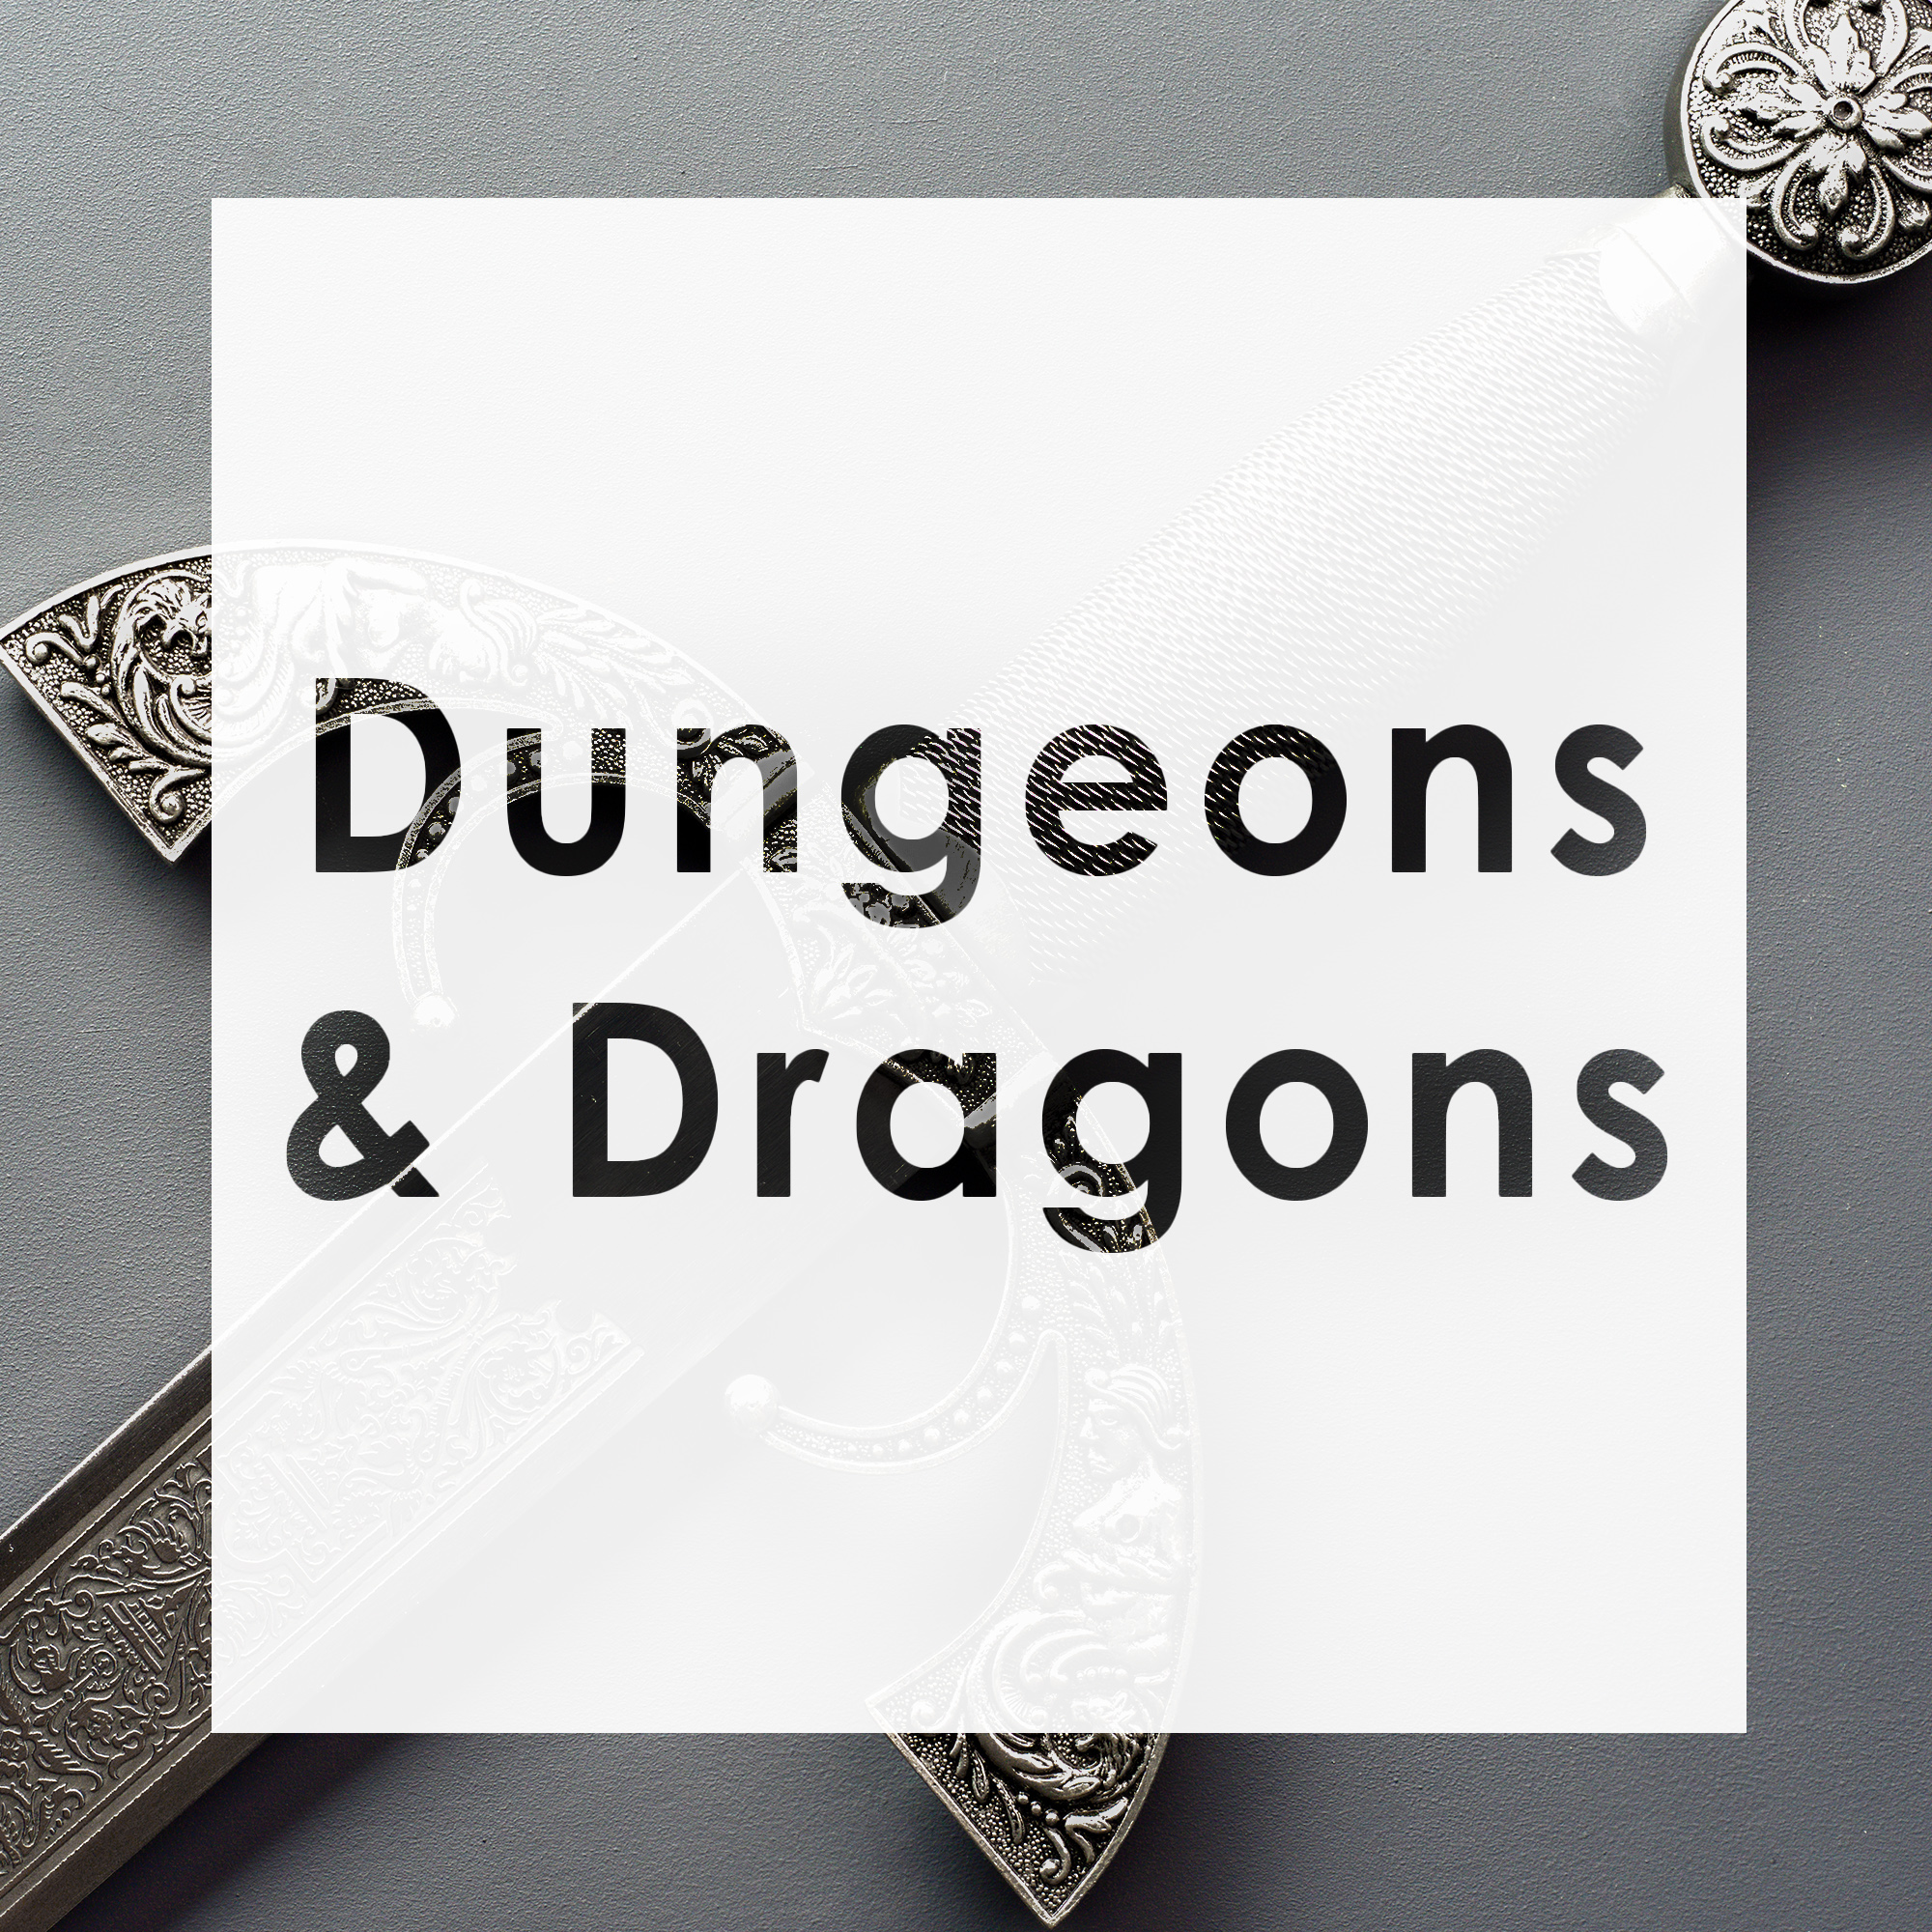 Dungeons & Dragons Club